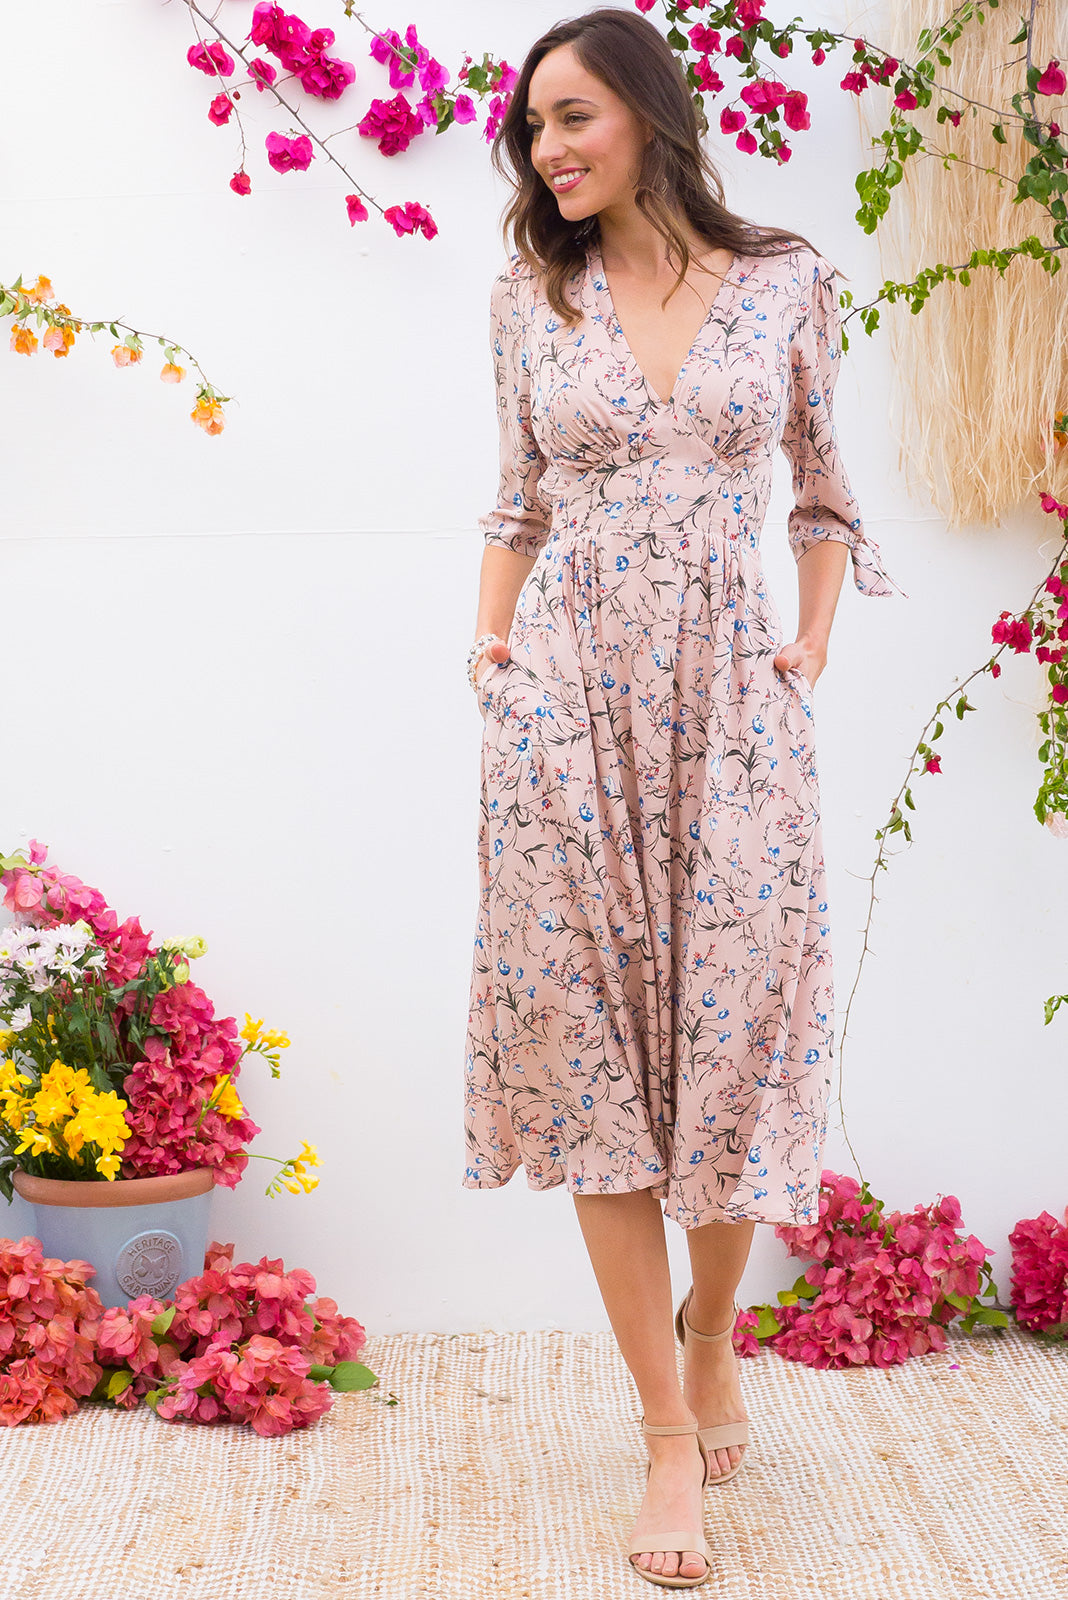 Henrietta Blush Pink Midi dress features a vintage inspired fitted basque waist and elasticated waist with a midi sleeve and deep v neck the fabric is a soft woven rayon in a soft dusky blush rose pink and floral print